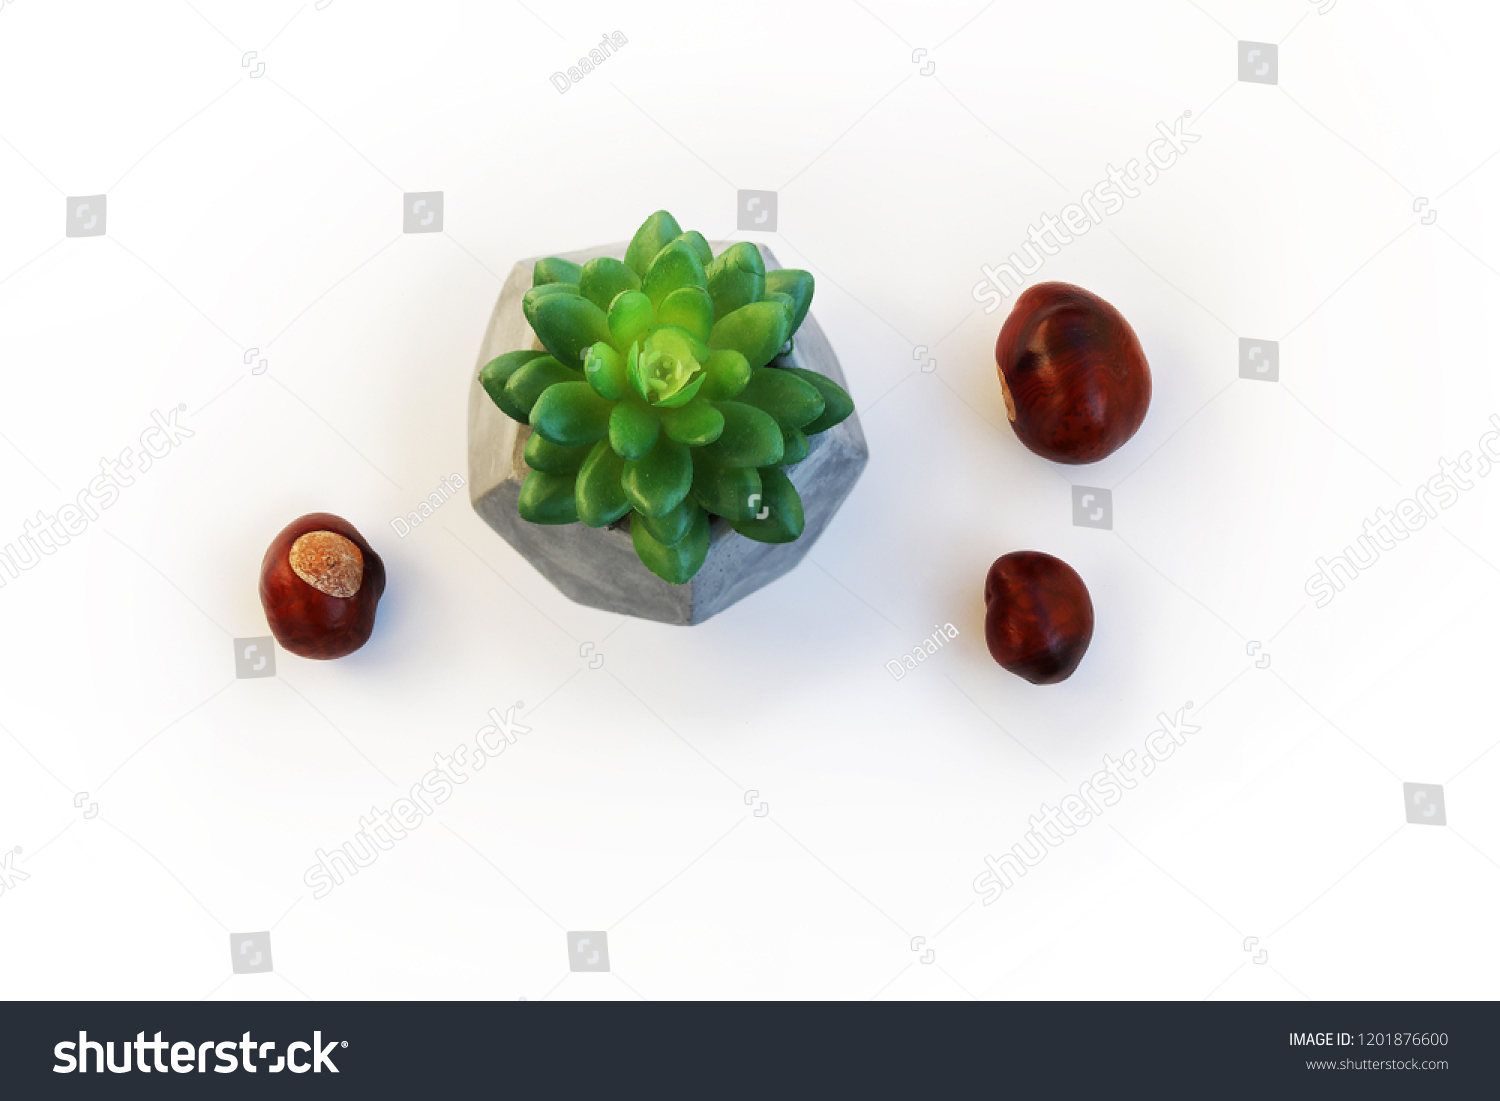 One Plastic Flower Crassula Plant Gray Stock Photo Edit Now 1201876600